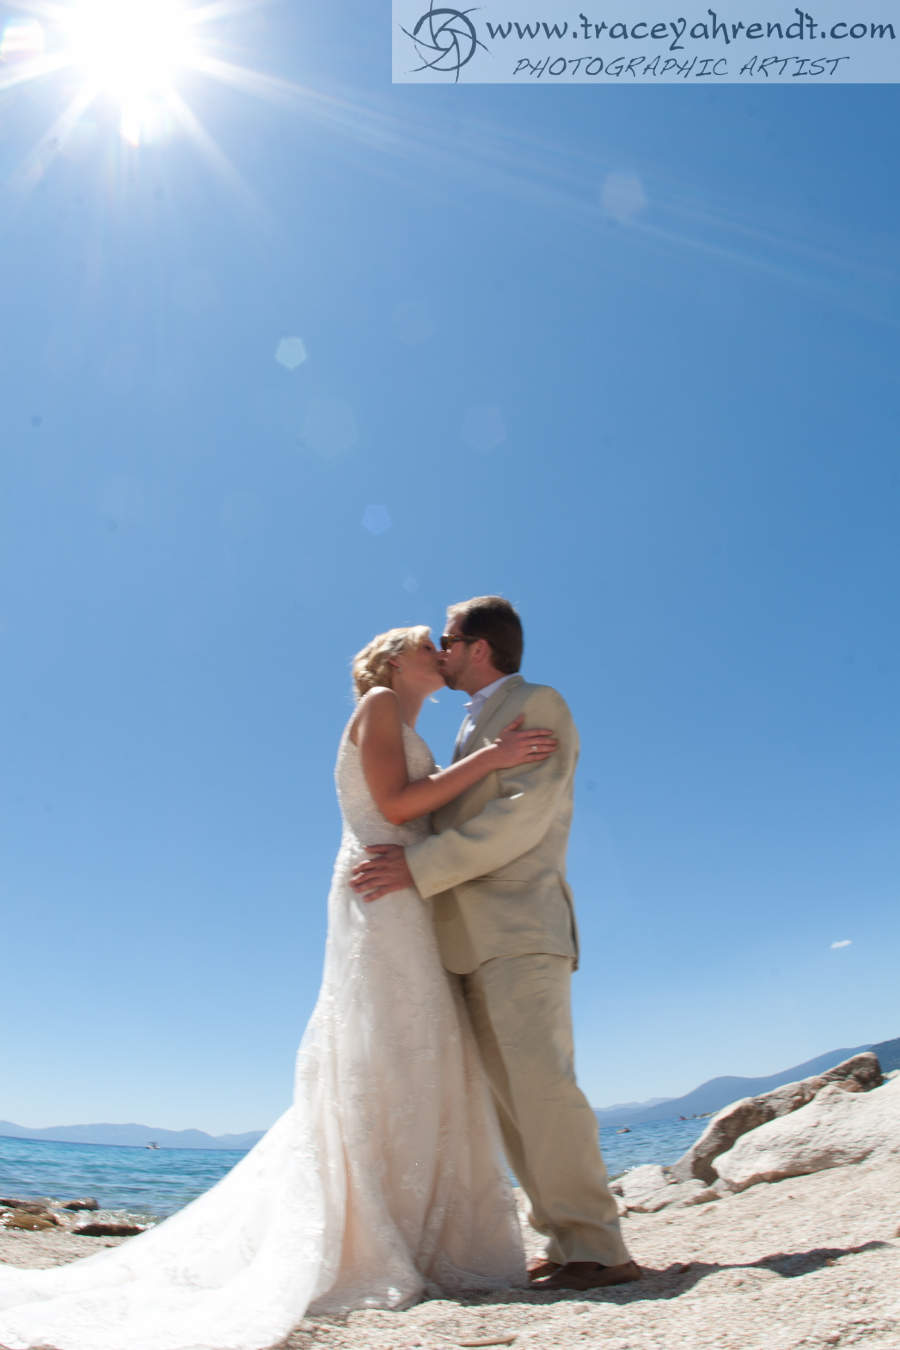 Lake Tahoe Wedding - Destination Wedding Photography